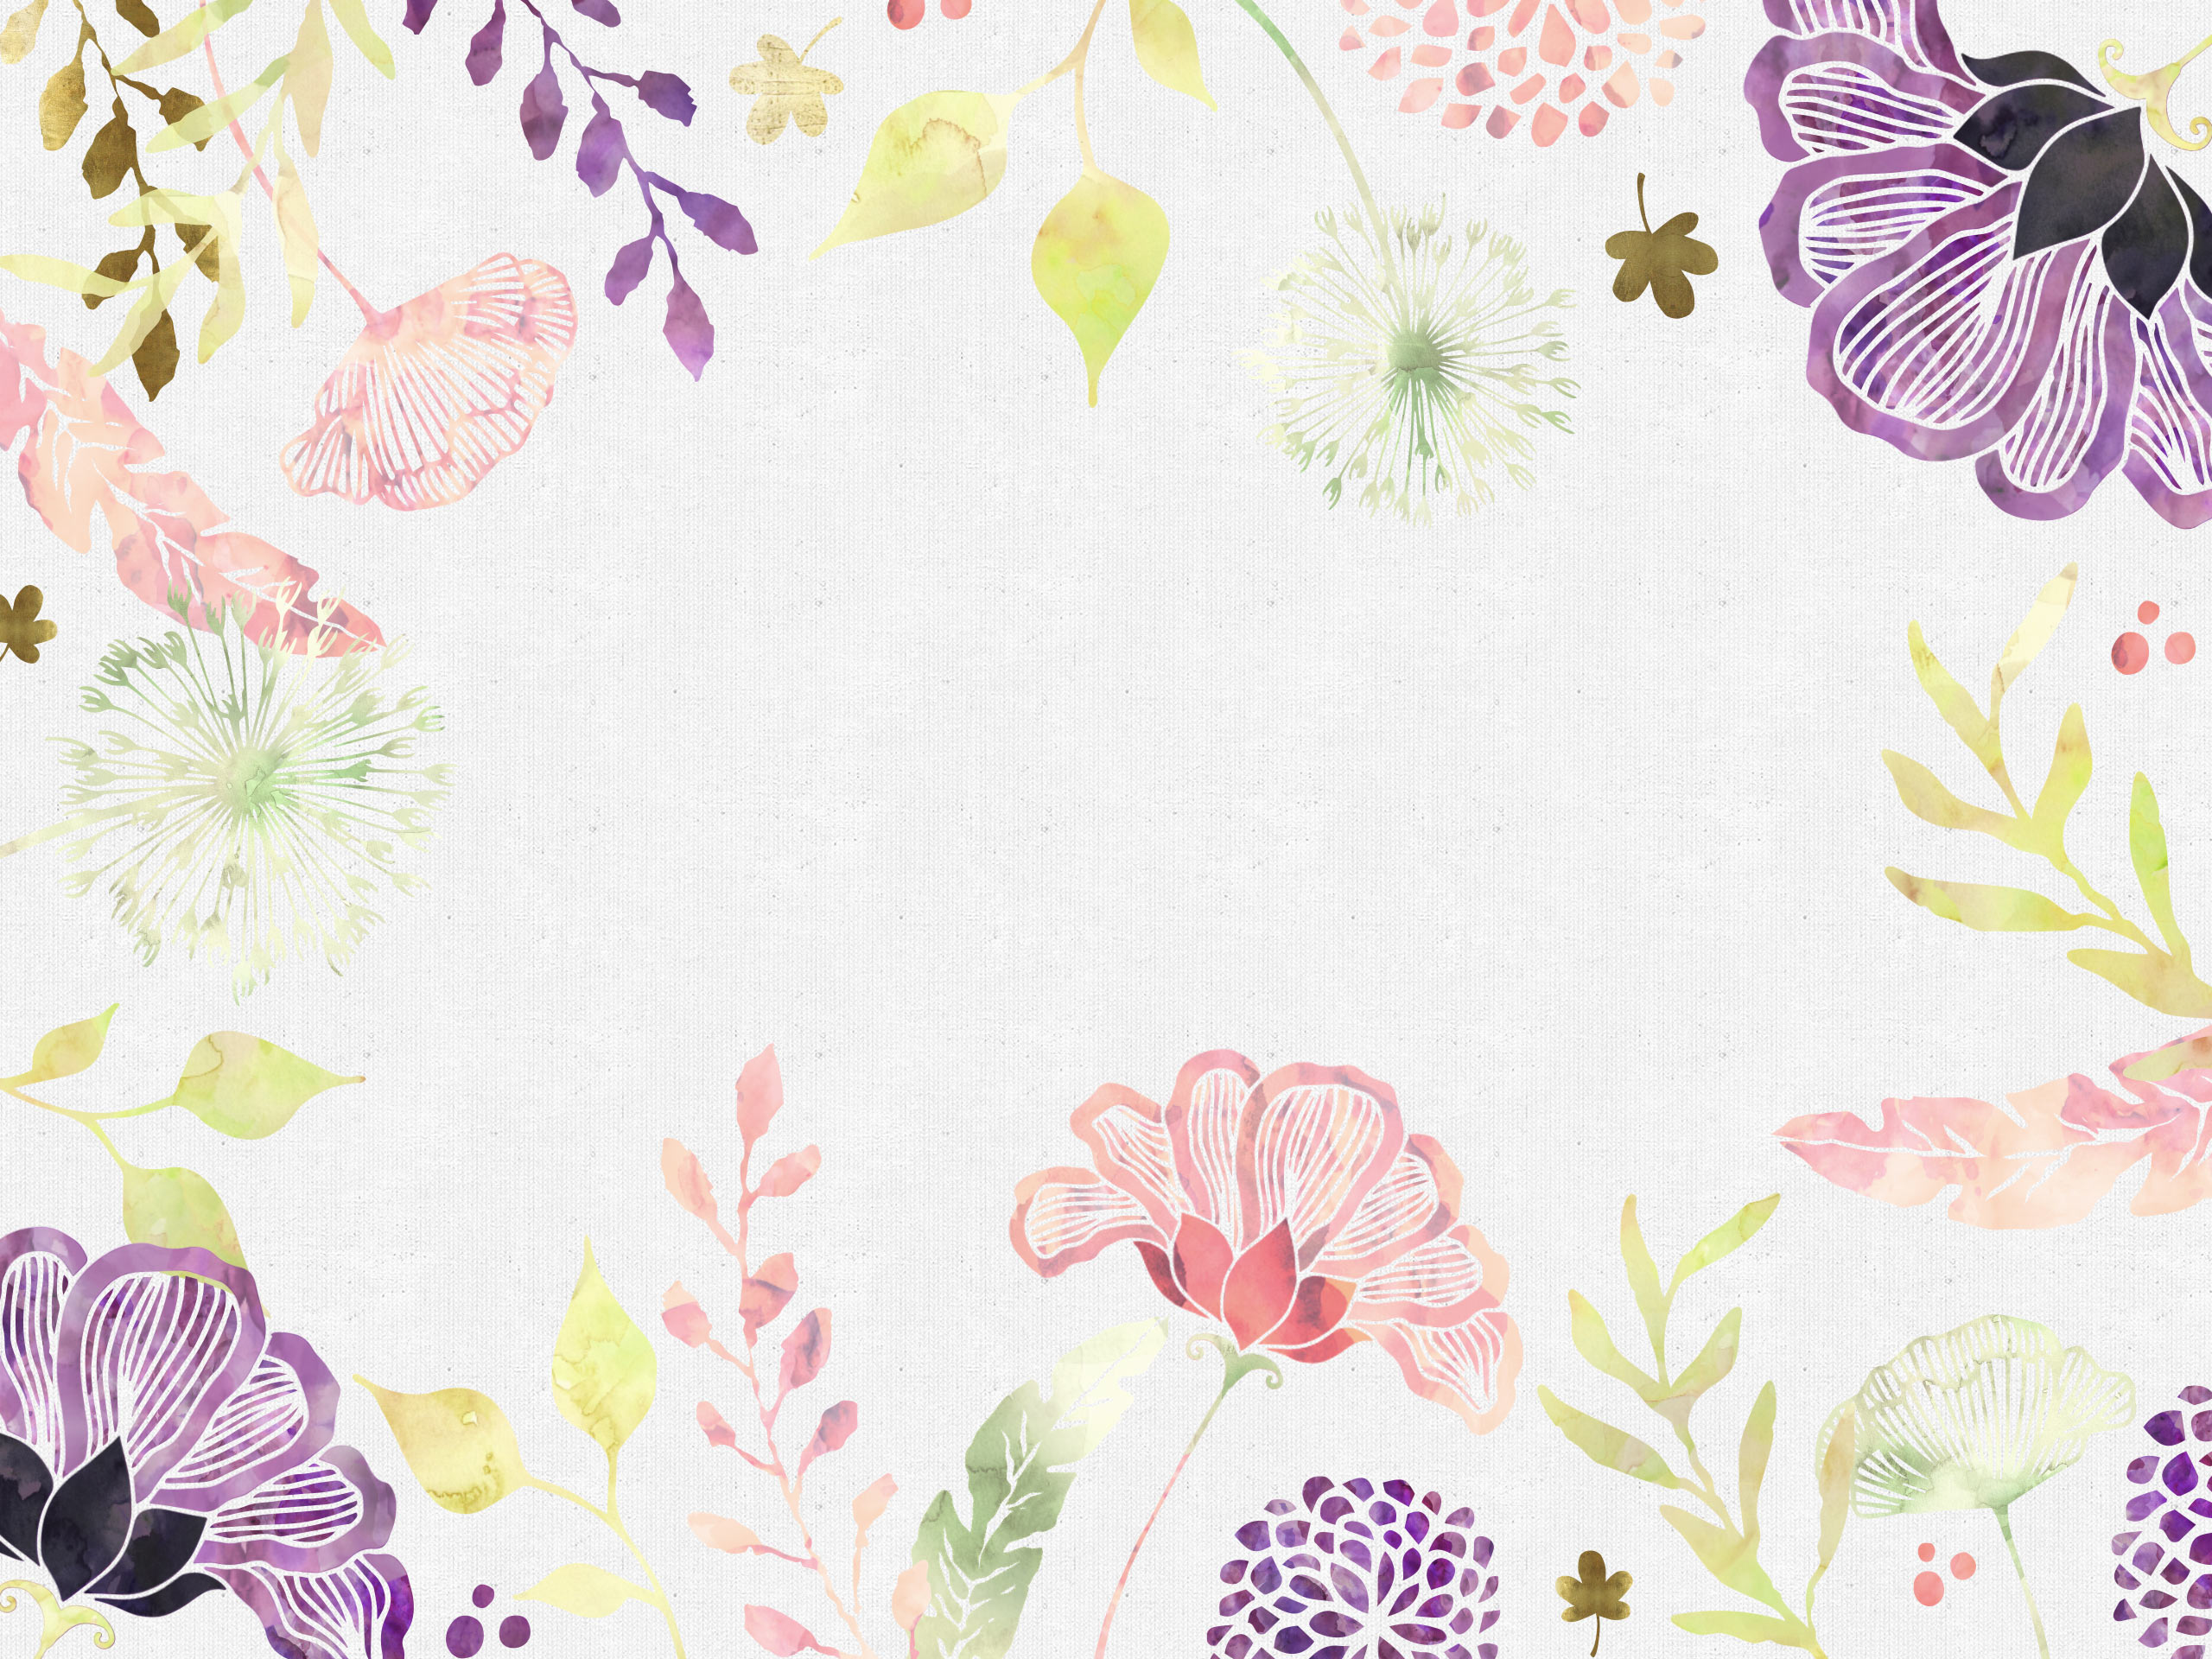 Free Floral Desktop Wallpaper - I Choose Happiness